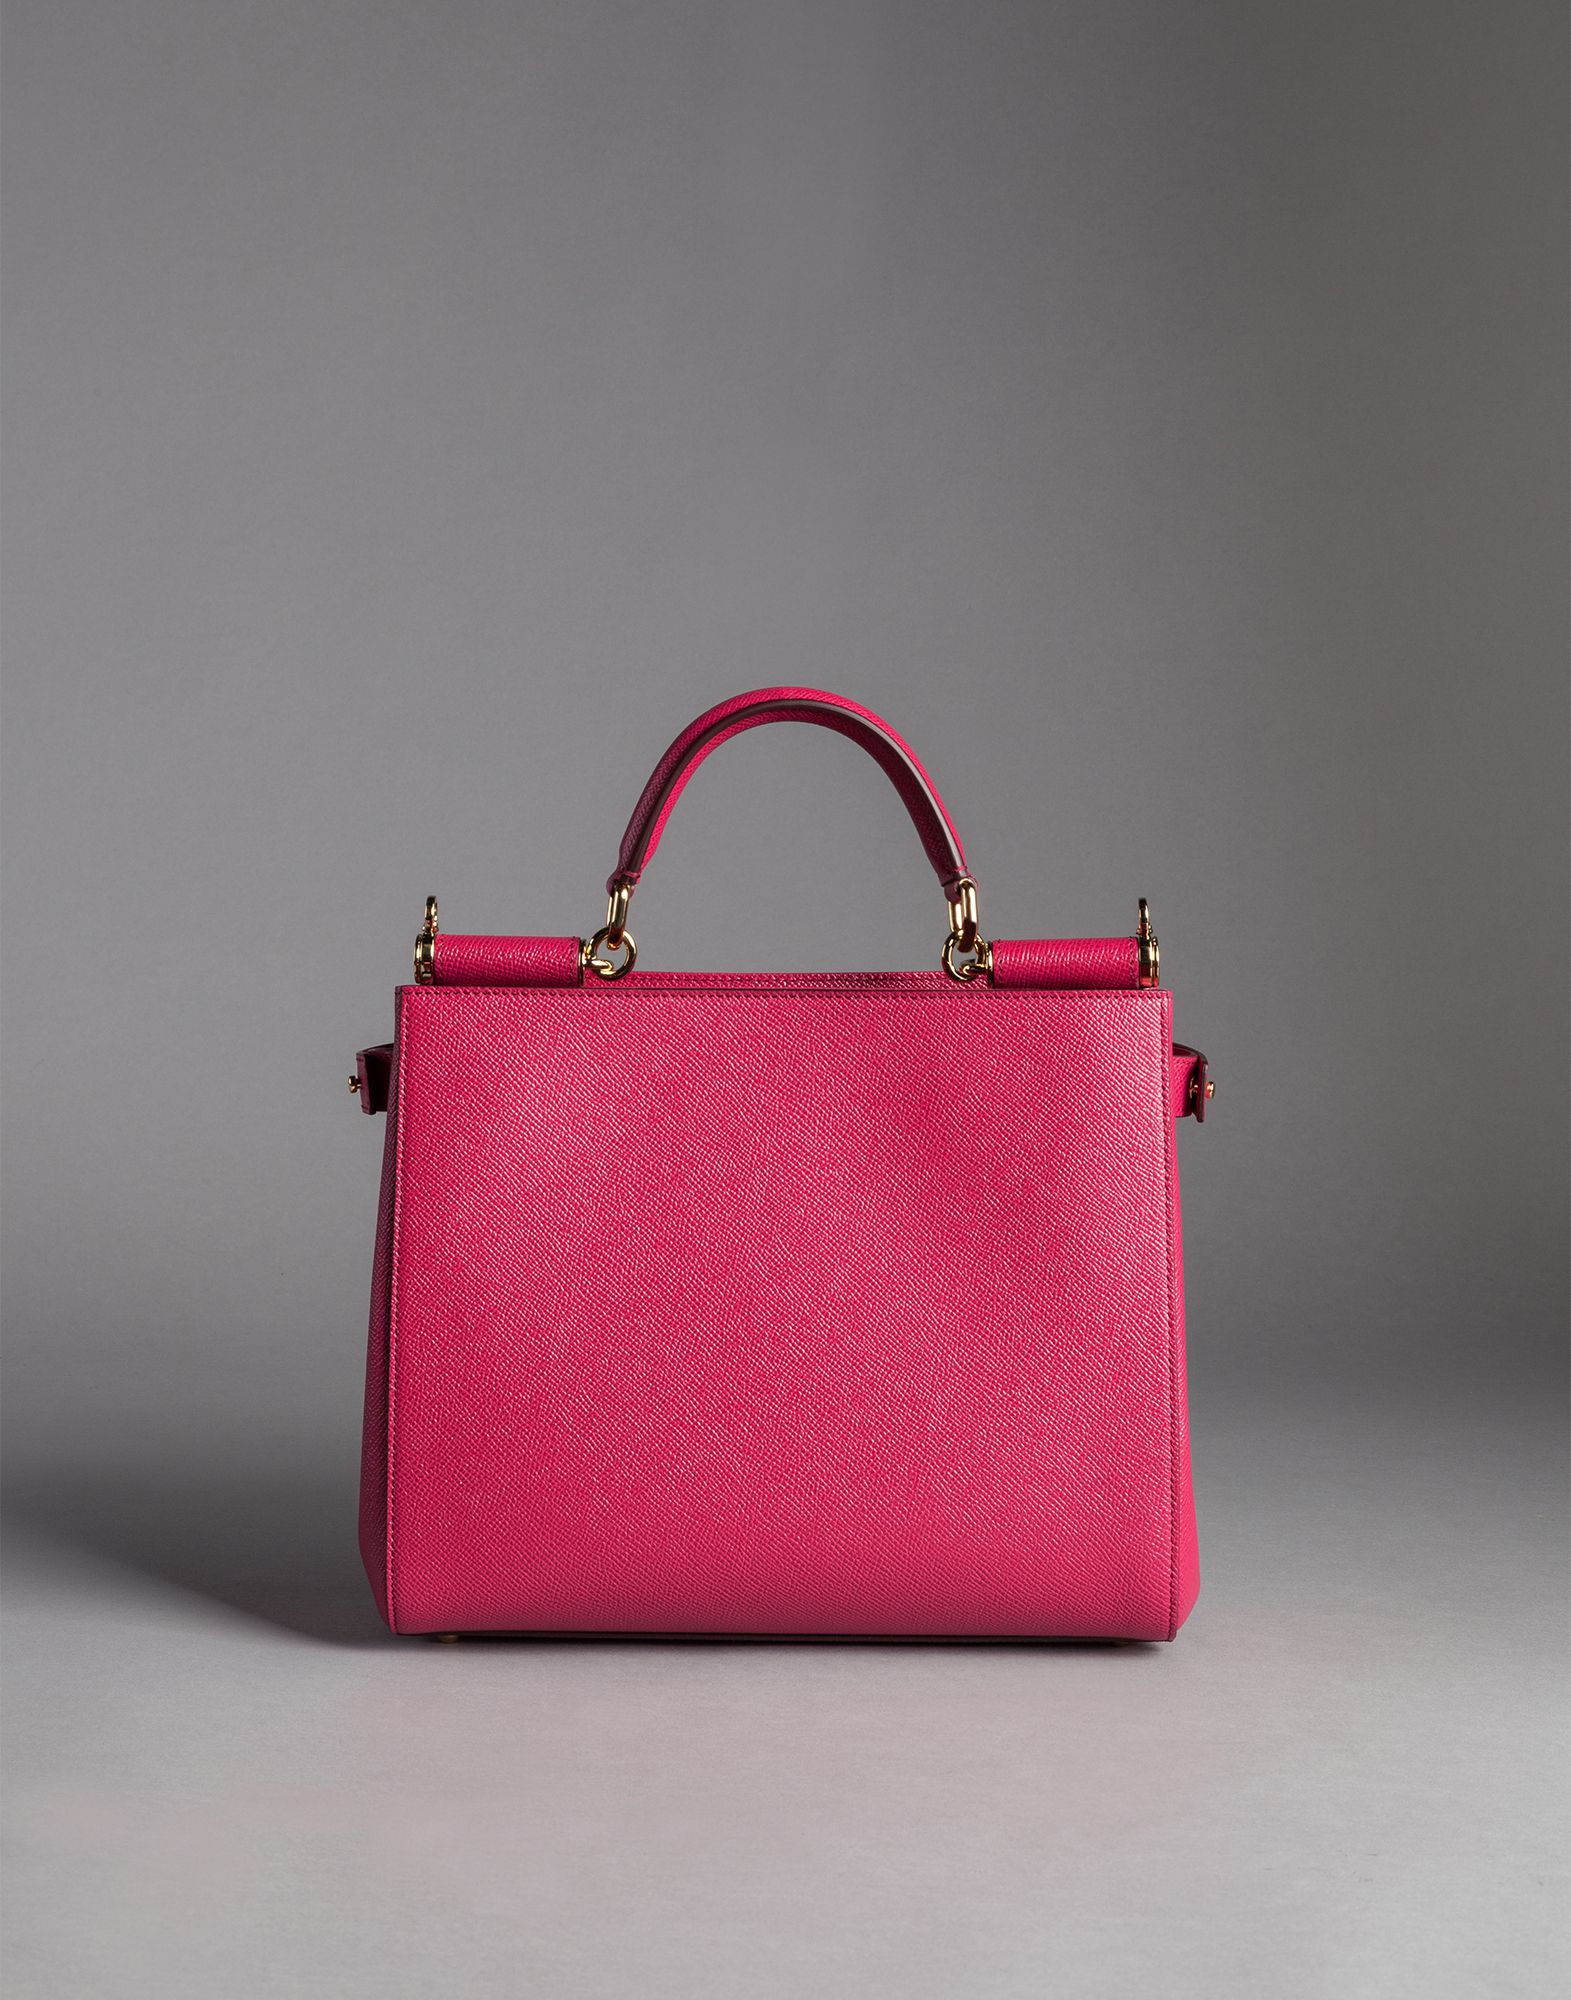 Lyst - Dolce   Gabbana Dauphine Calfskin Sicily Shopping Bag in Pink 9ced5138920be